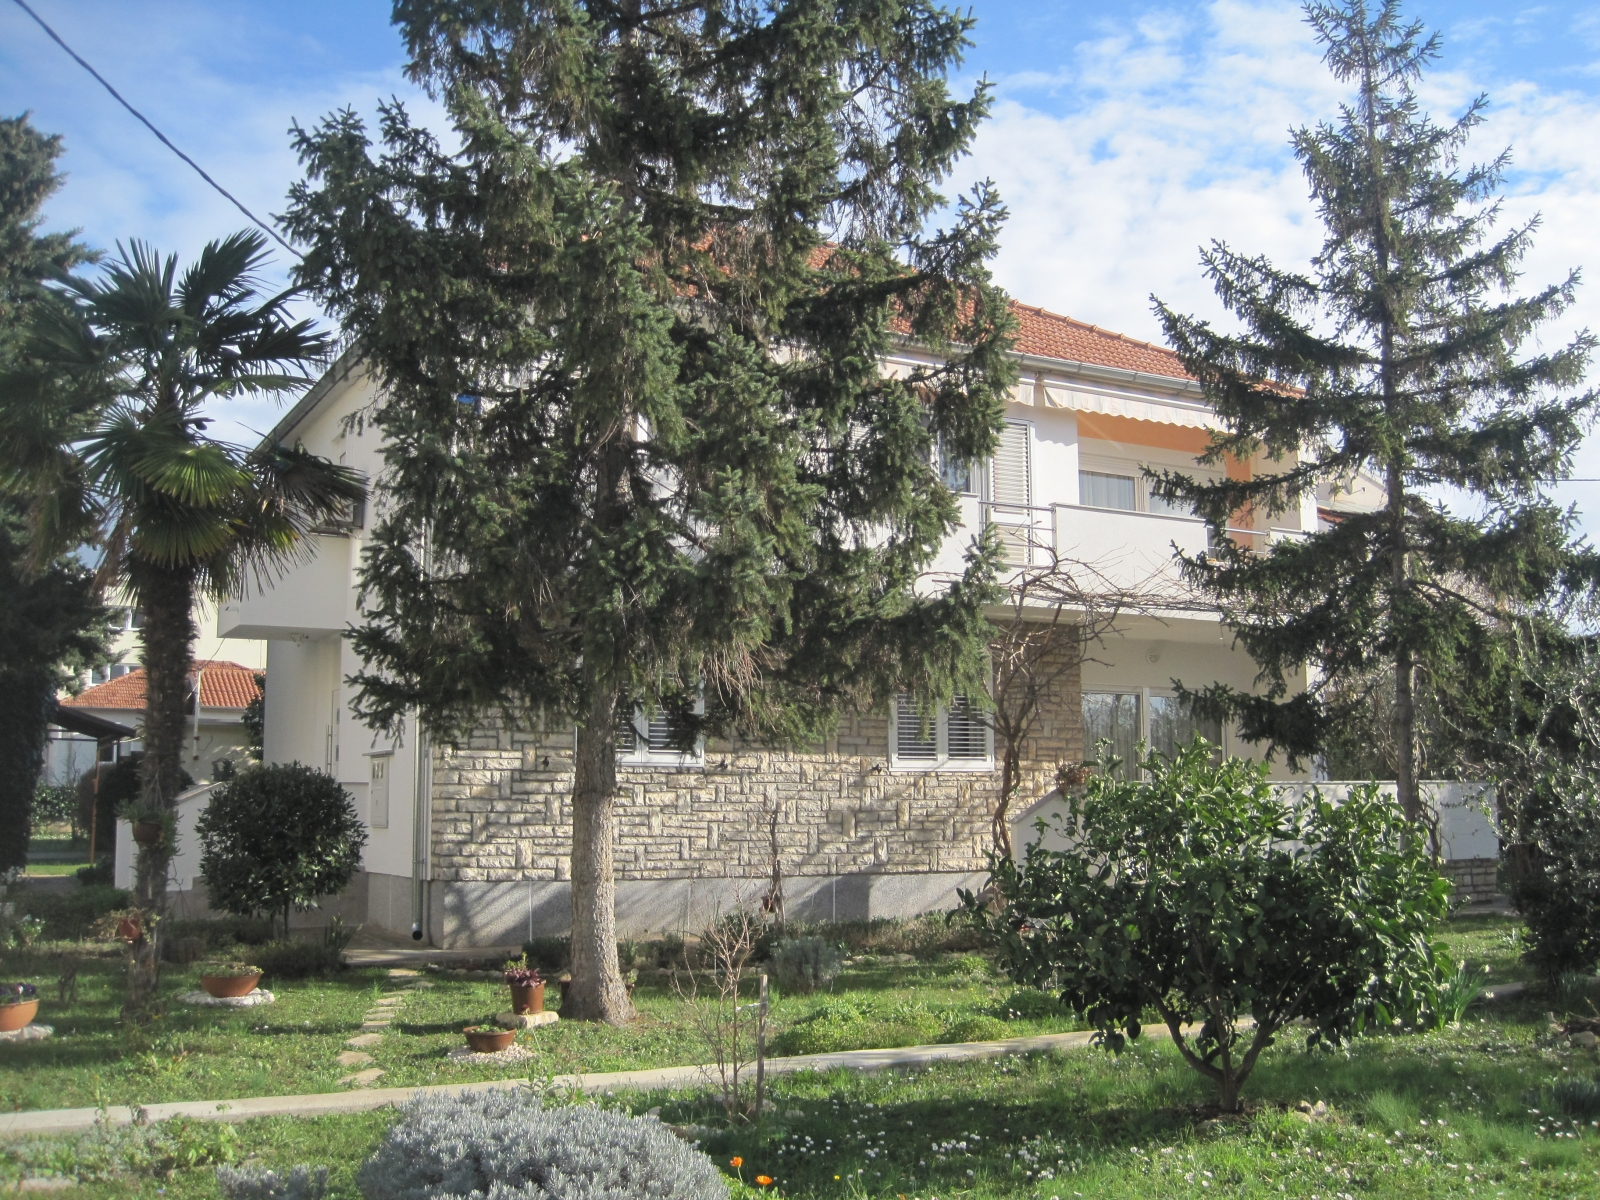 02218ZADA - Zadar - Apartments Croatia